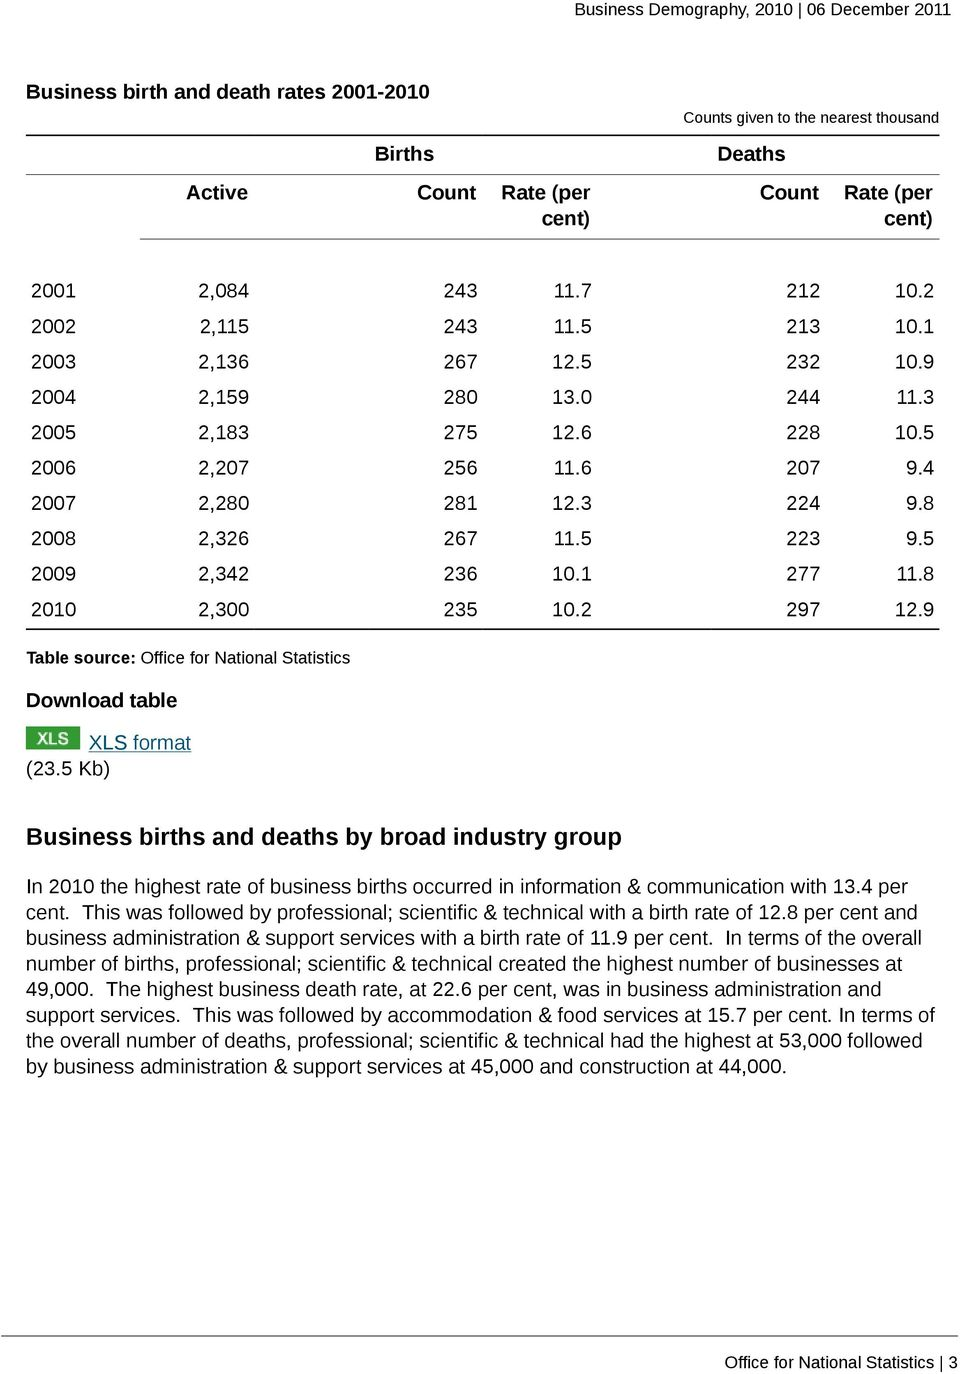 8 2010 2,300 235 10.2 297 12.9 (23.5 Kb) Business births and deaths by broad industry group In 2010 the highest rate of business births occurred in information & communication with 13.4 per cent.